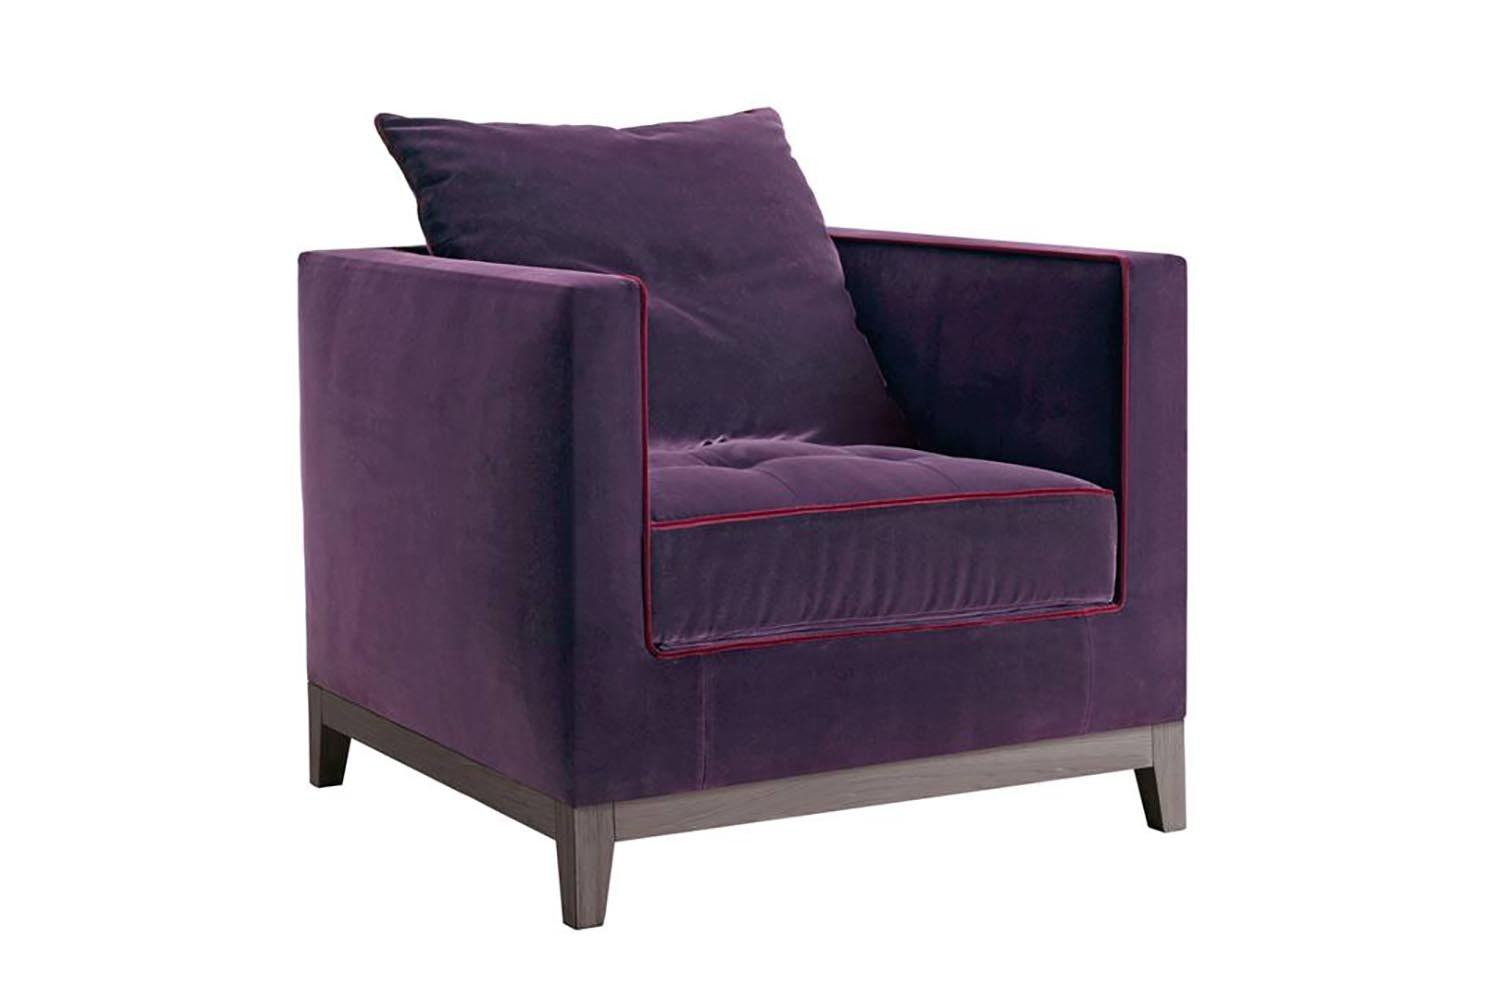 Lutetia 2011 Armchair by Antonio Citterio for Maxalto